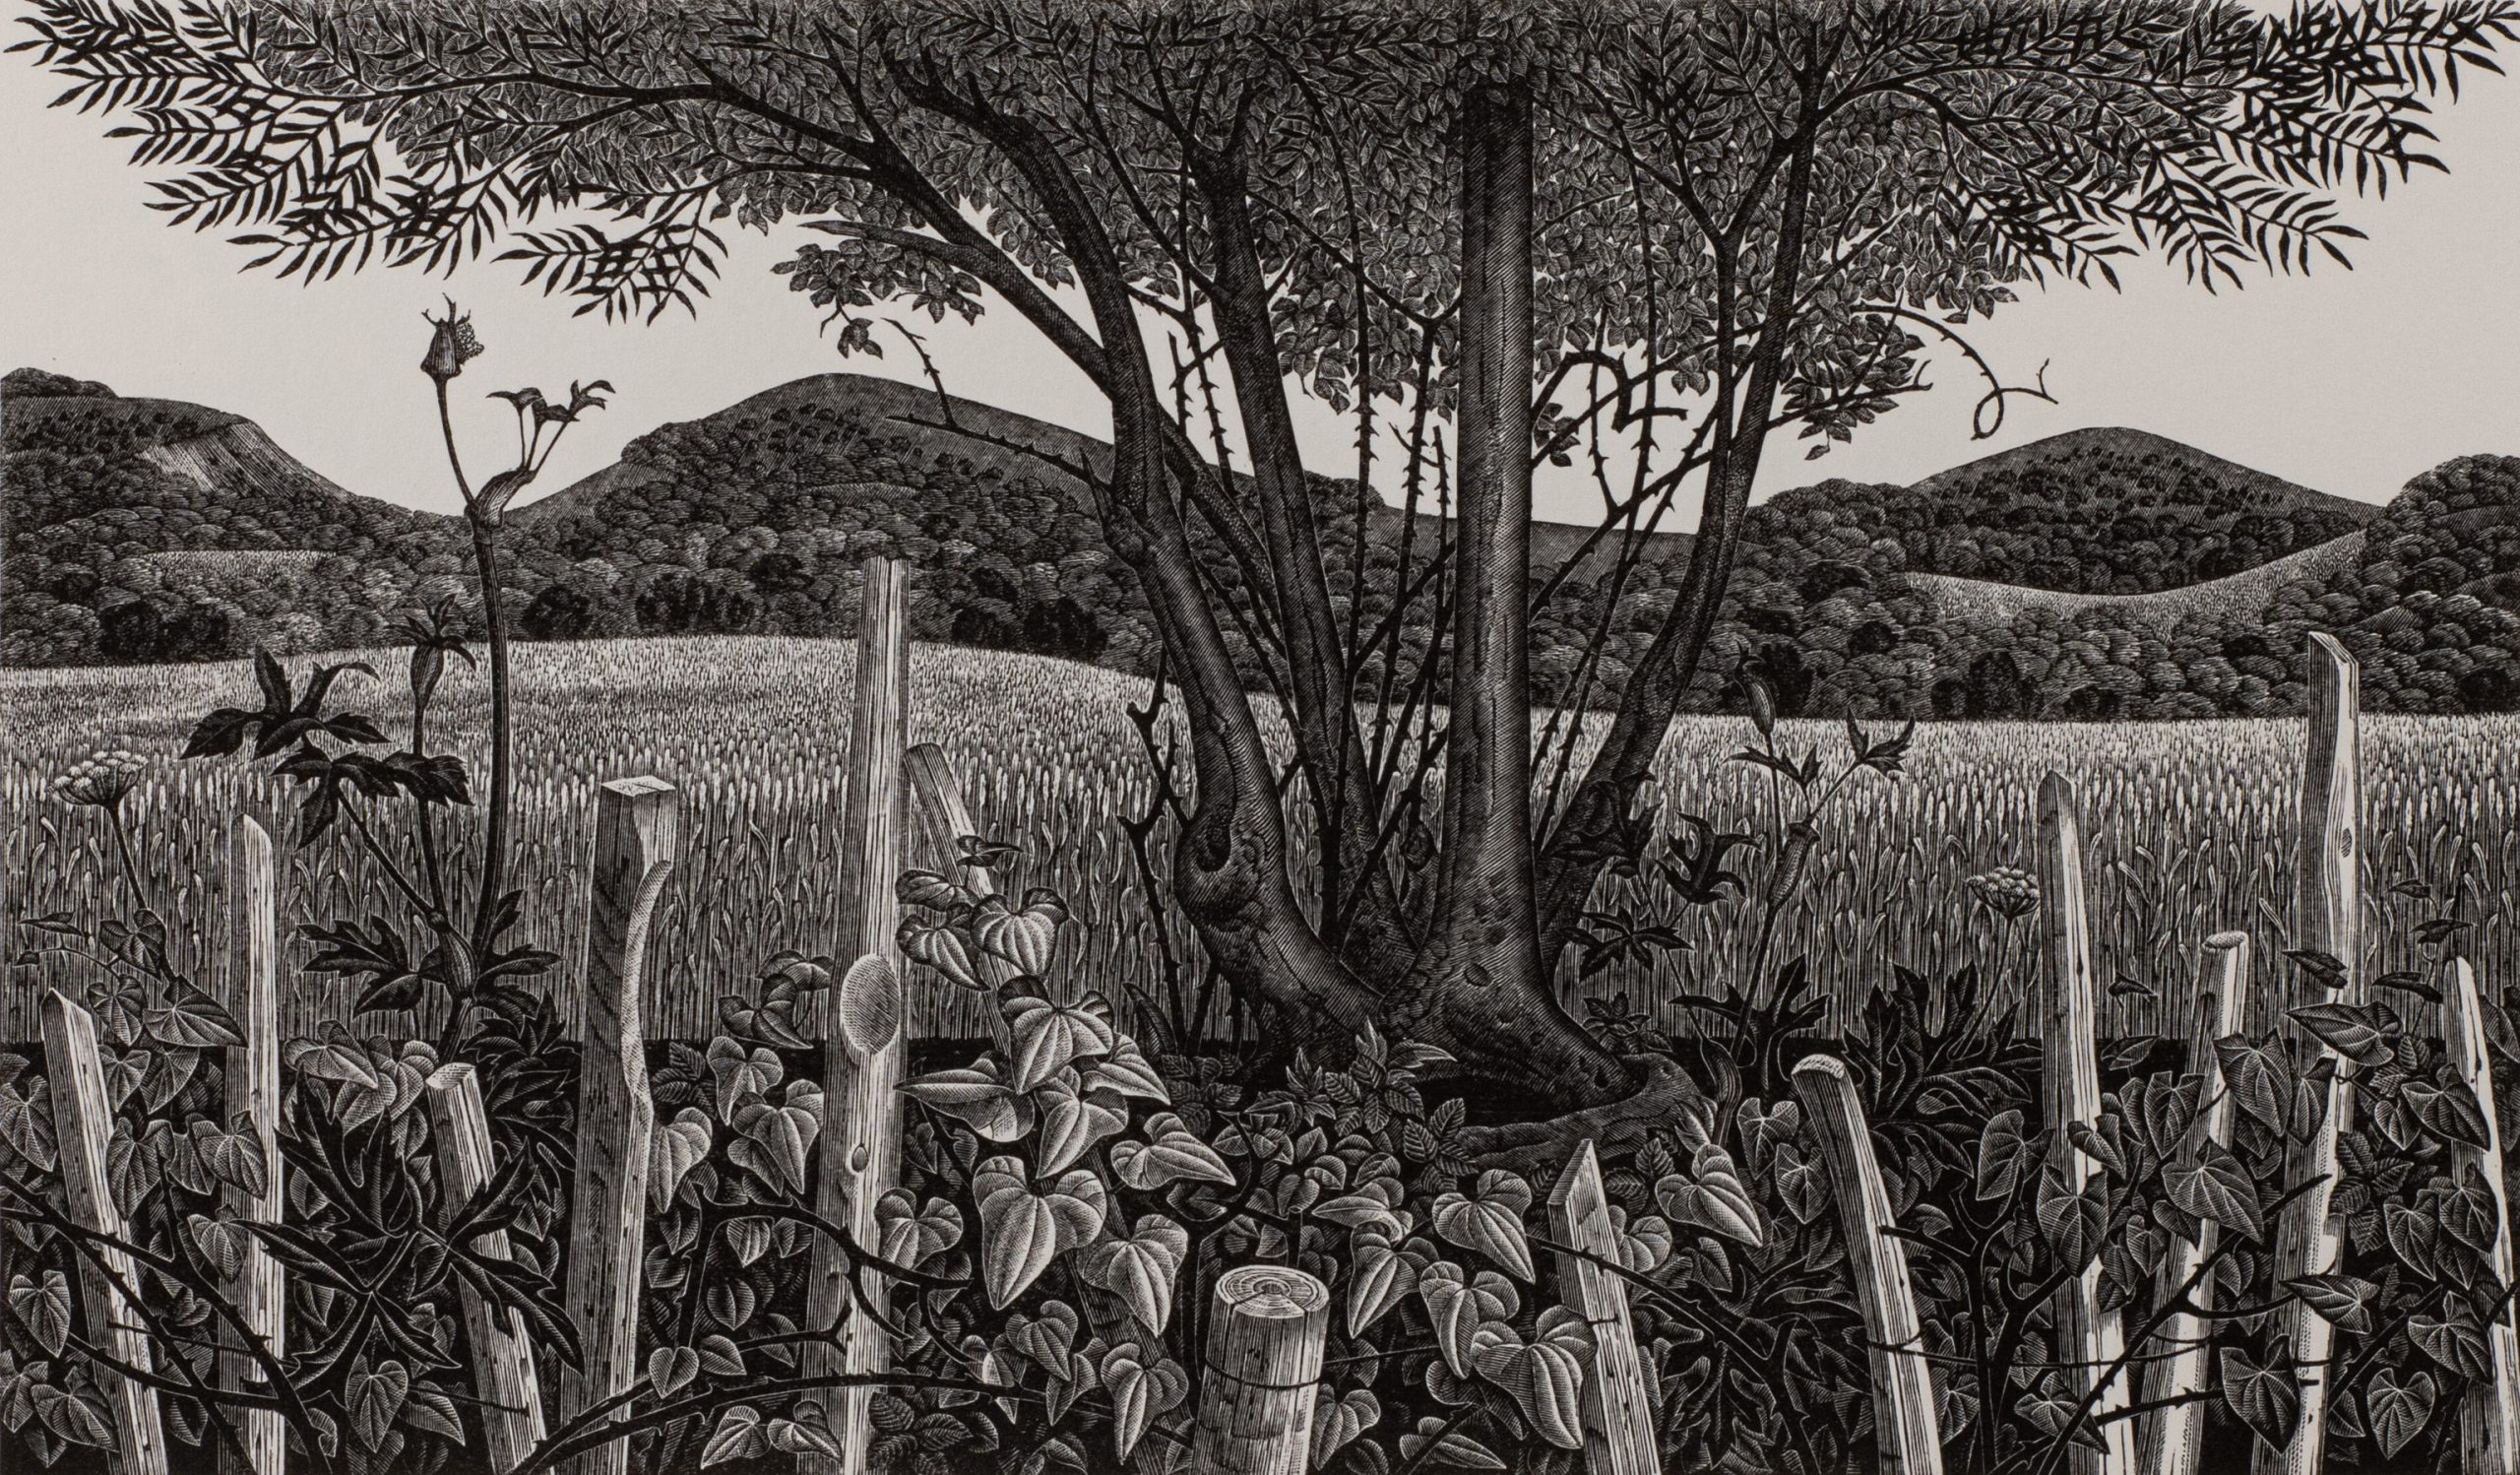 Pilgrims' Way by Monica Poole, Wood engraving